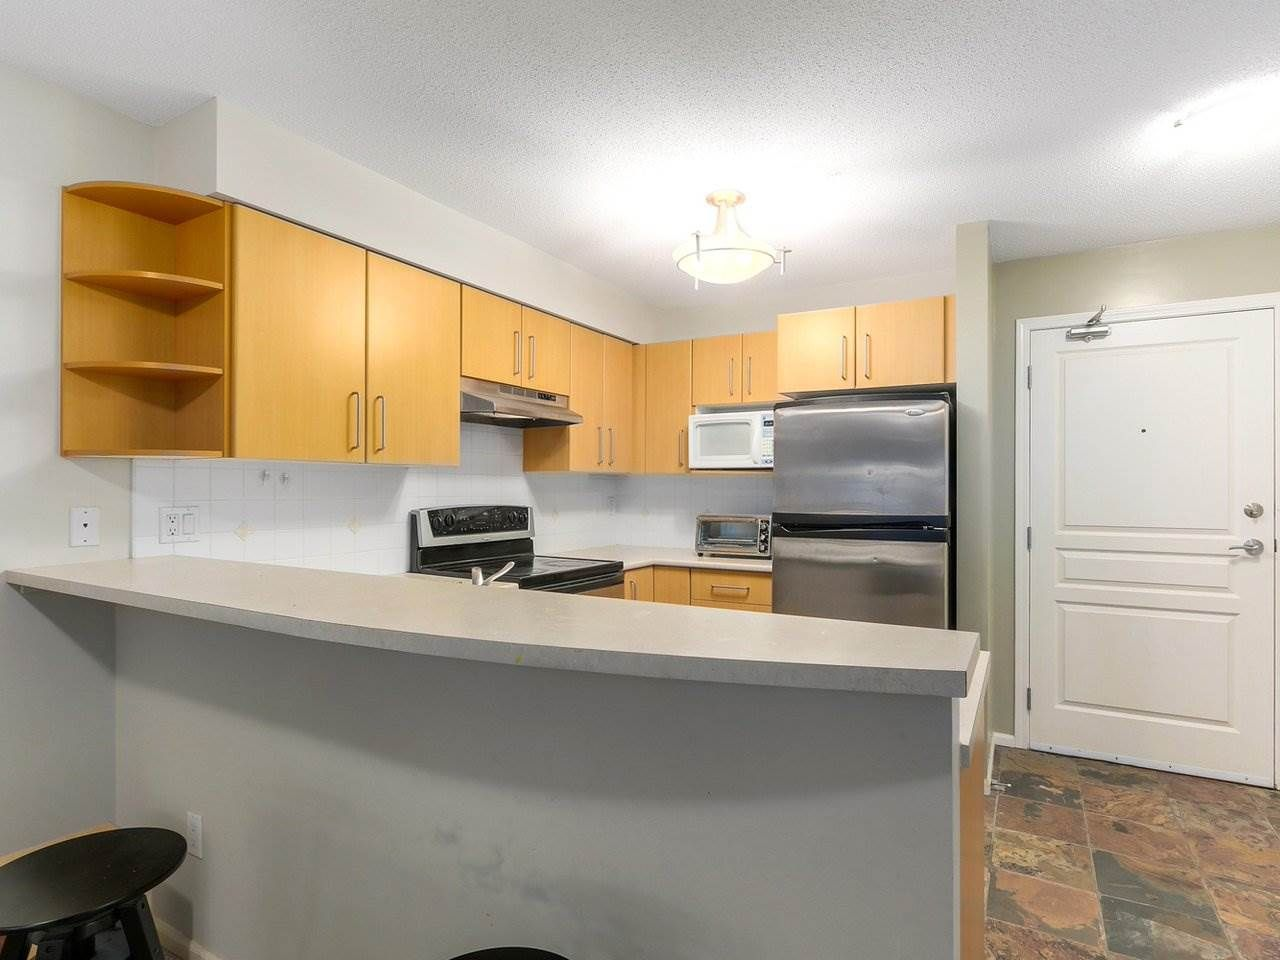 Photo 10: Photos: 205 3388 MORREY Court in Burnaby: Sullivan Heights Condo for sale (Burnaby North)  : MLS®# R2326824